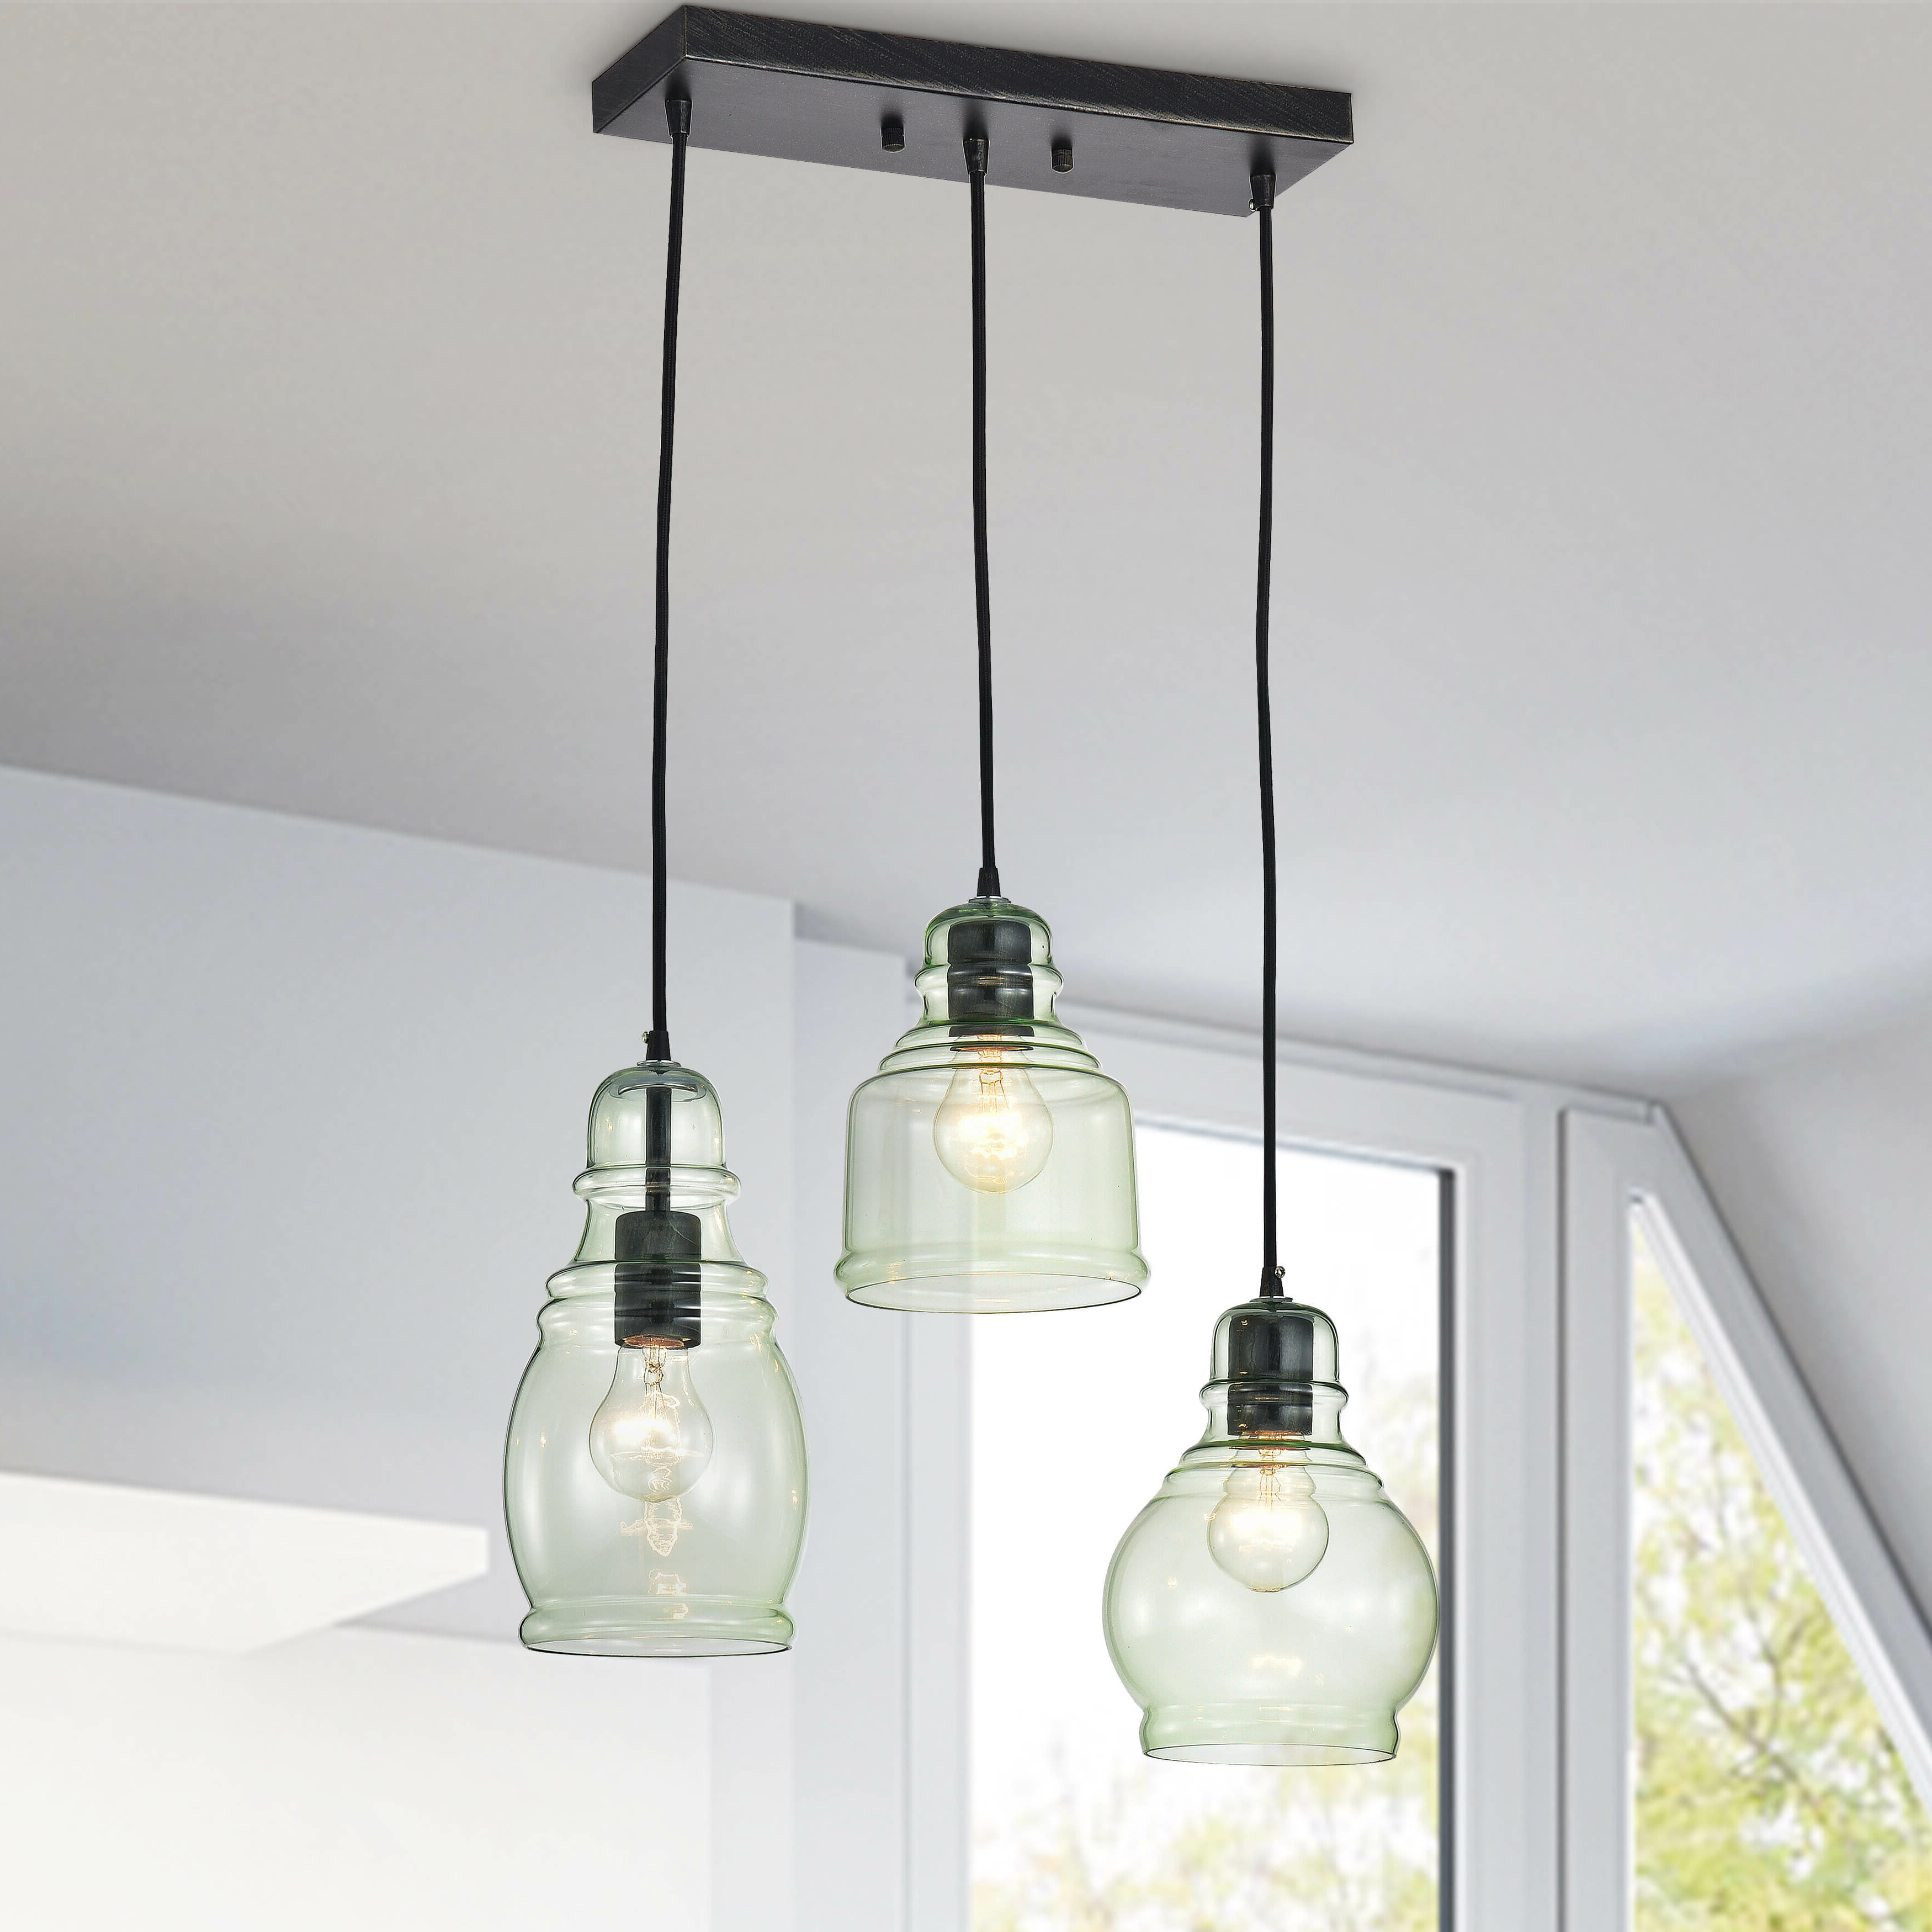 Recent Pruett 3 Light Cluster Bell Pendant With Regard To Vernice 3 Light Cluster Bell Pendants (View 10 of 20)